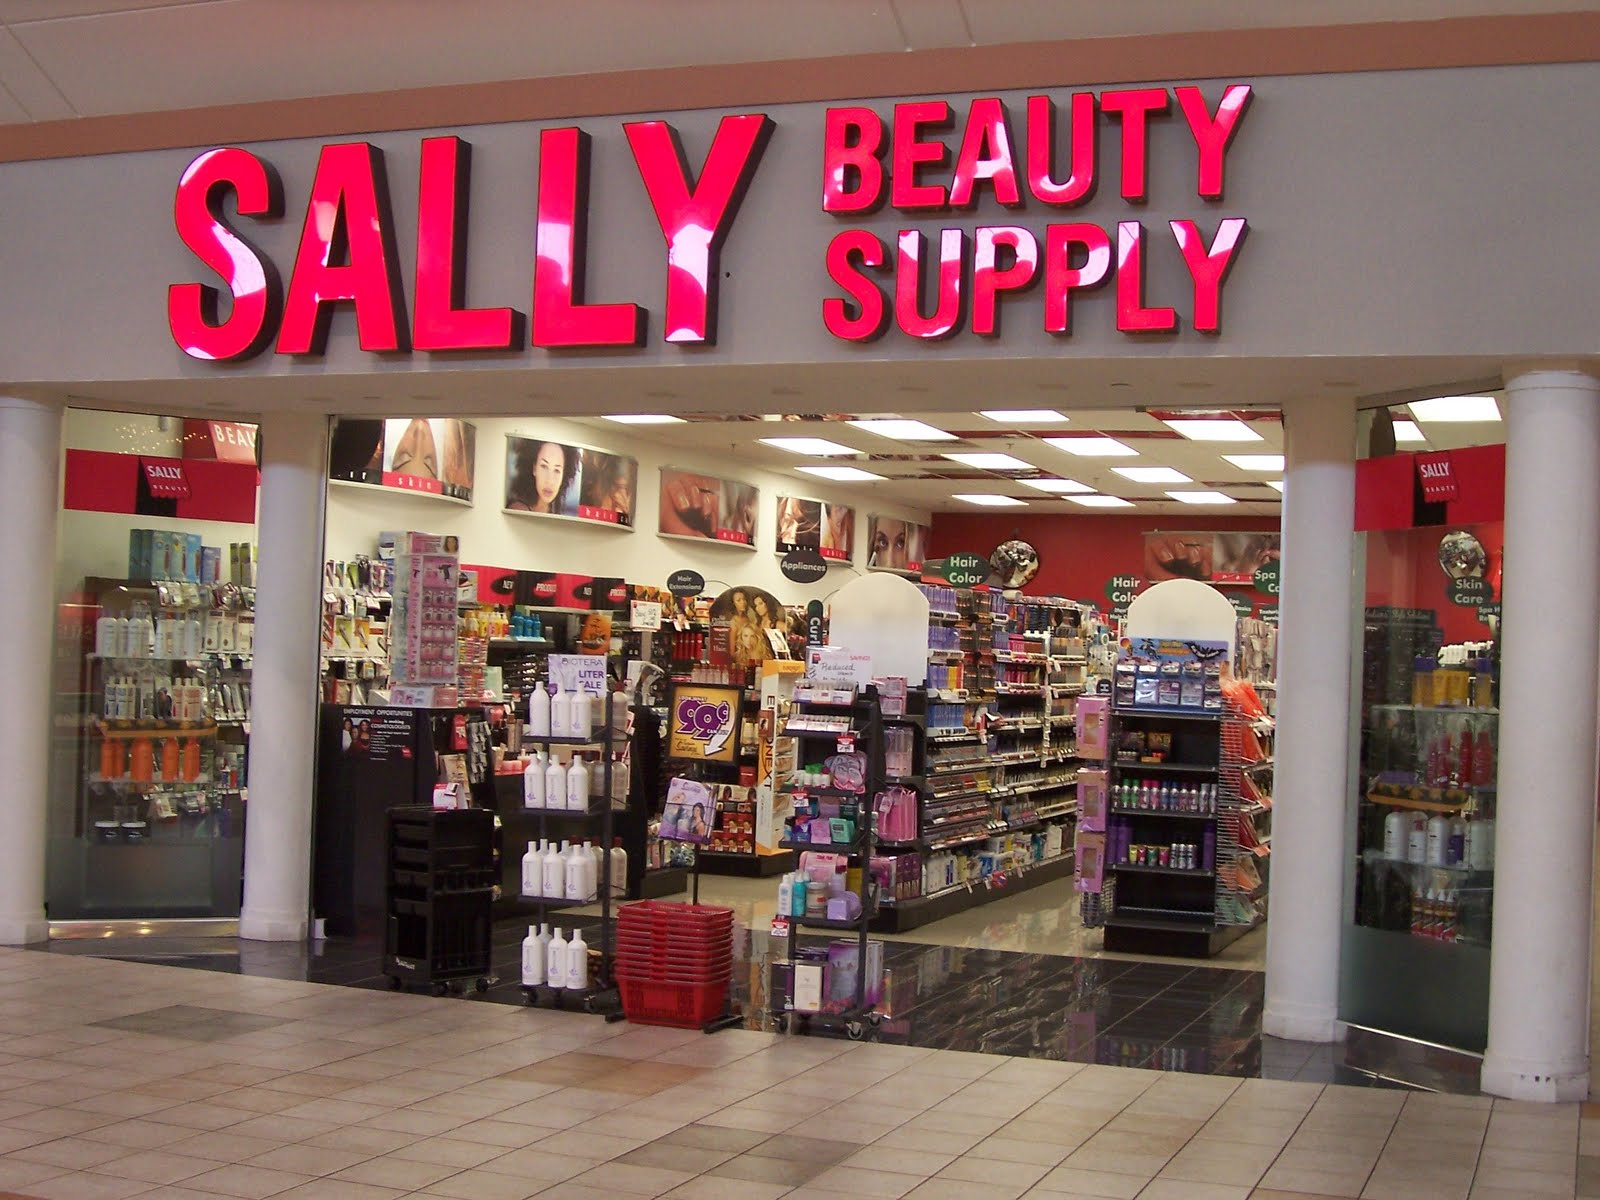 Sallys Beauty Supply